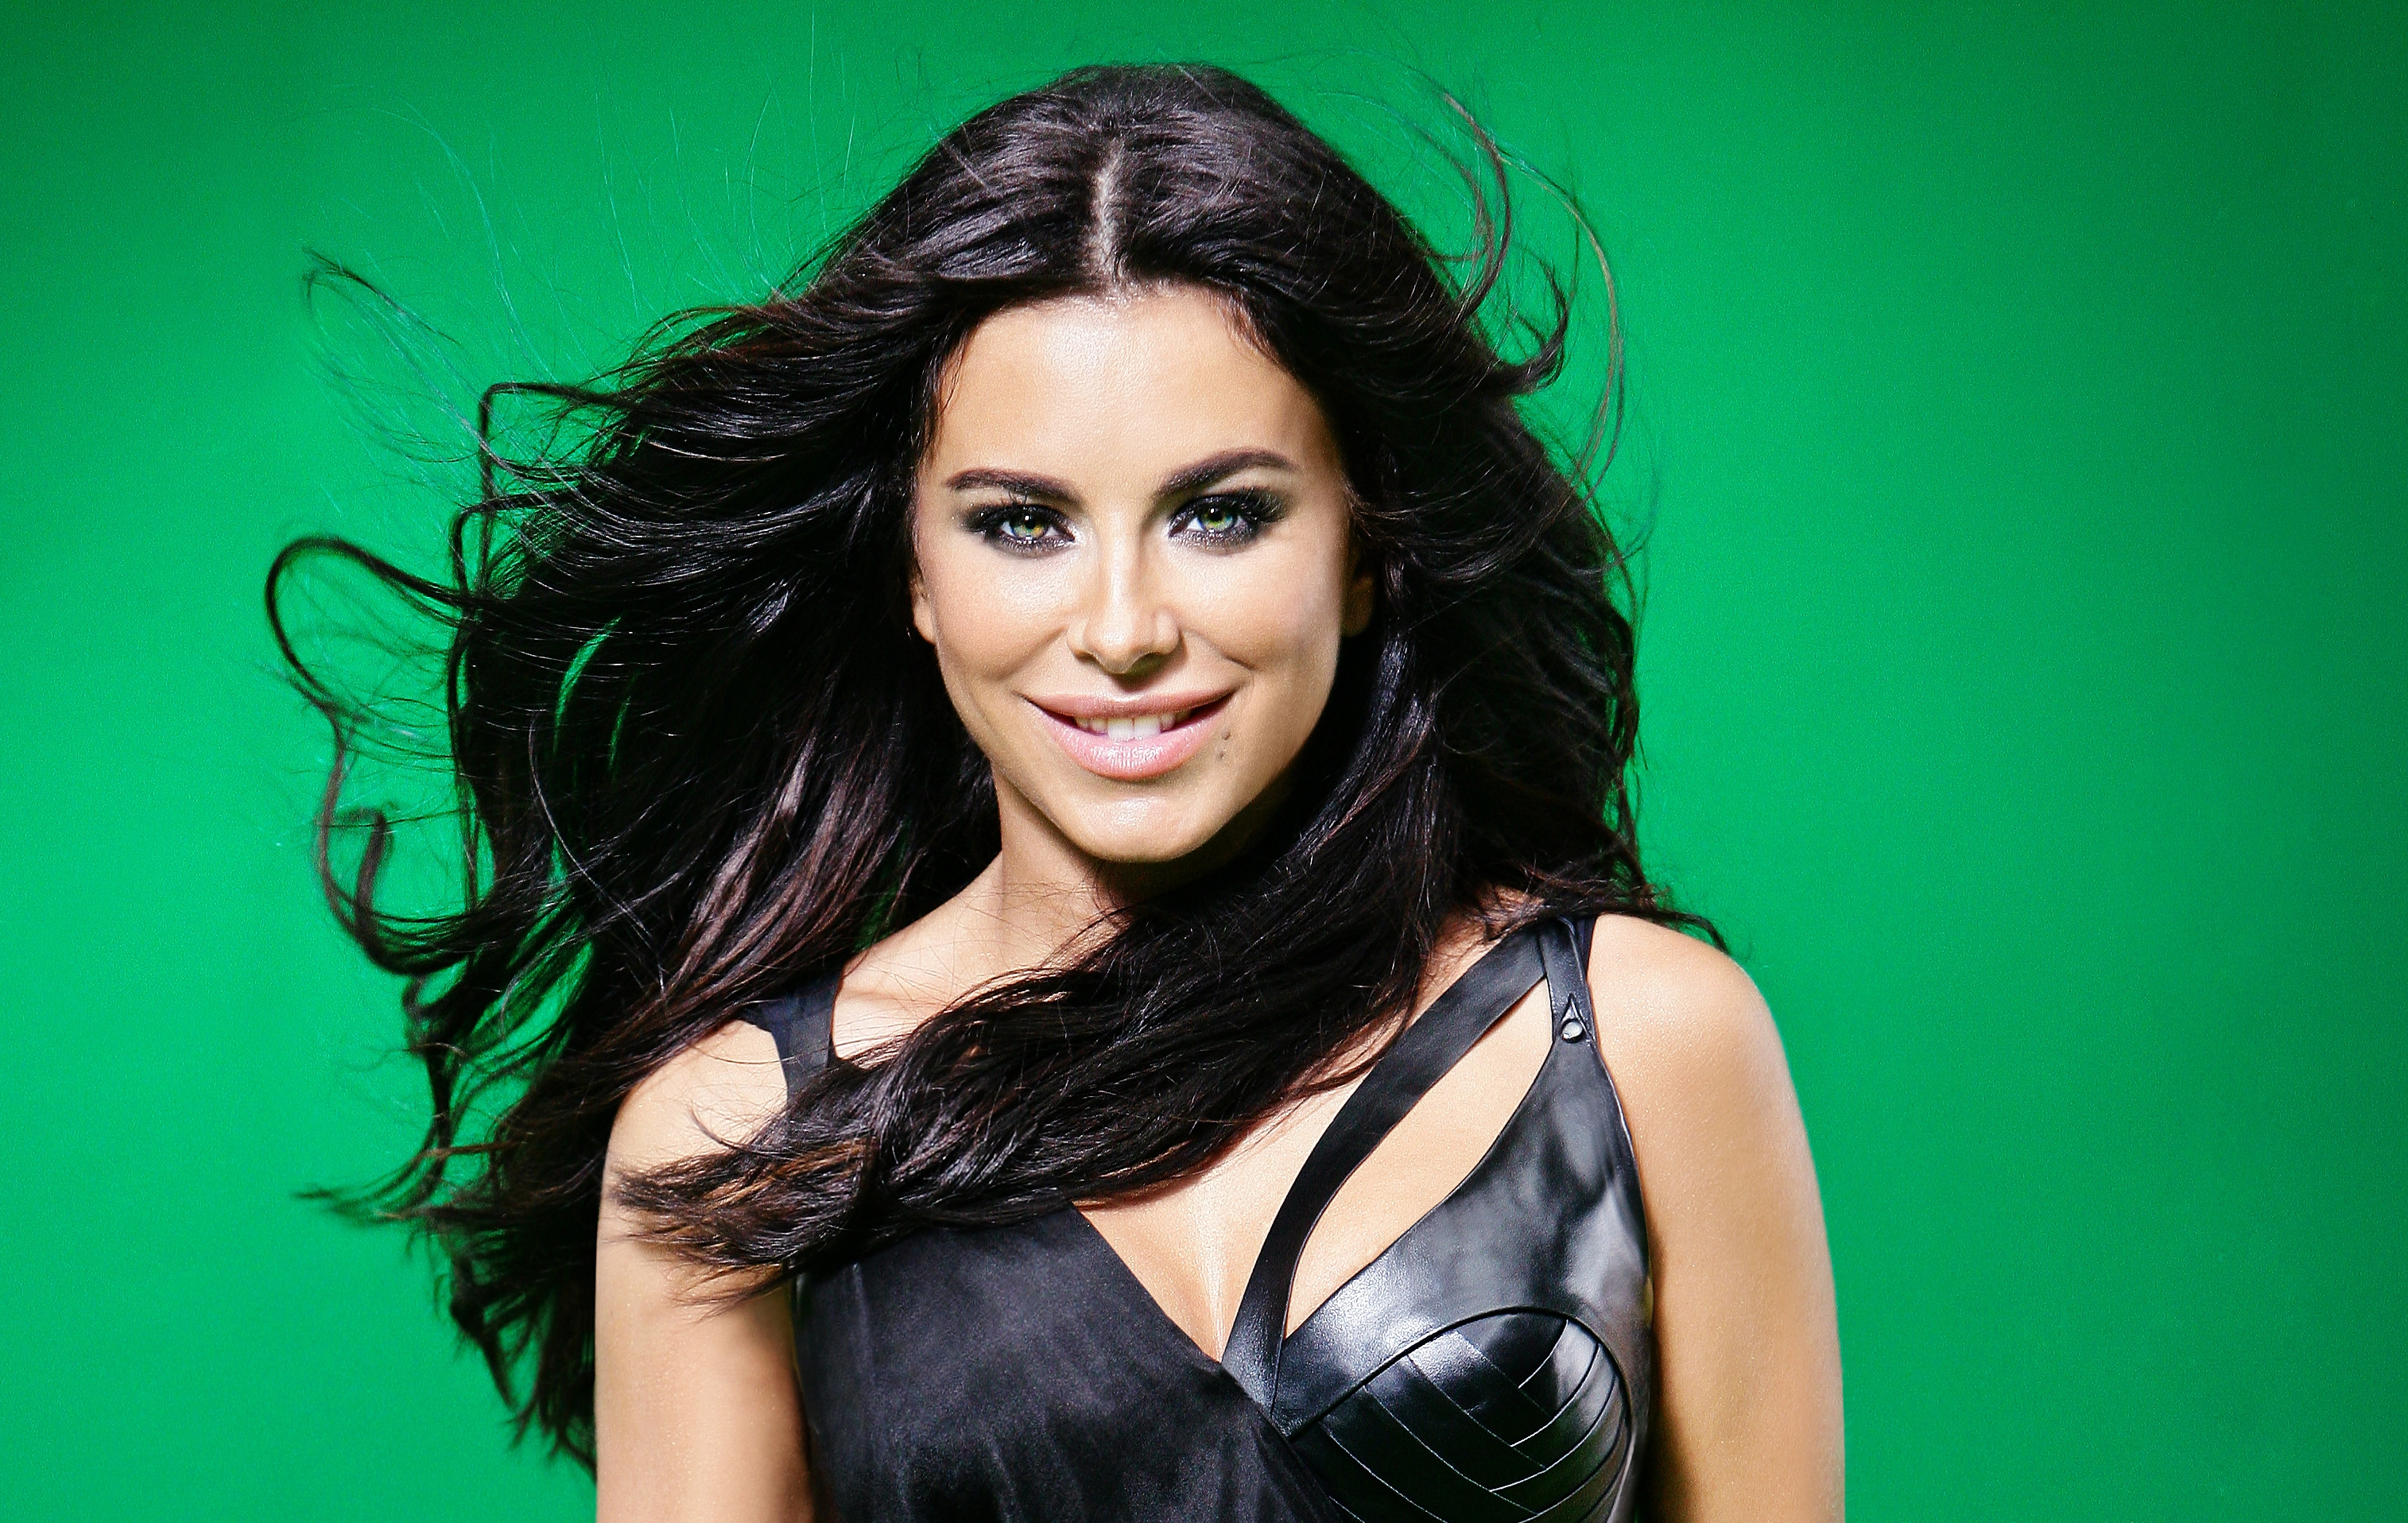 Ani Lorak Wallpapers Images Photos Pictures Backgrounds